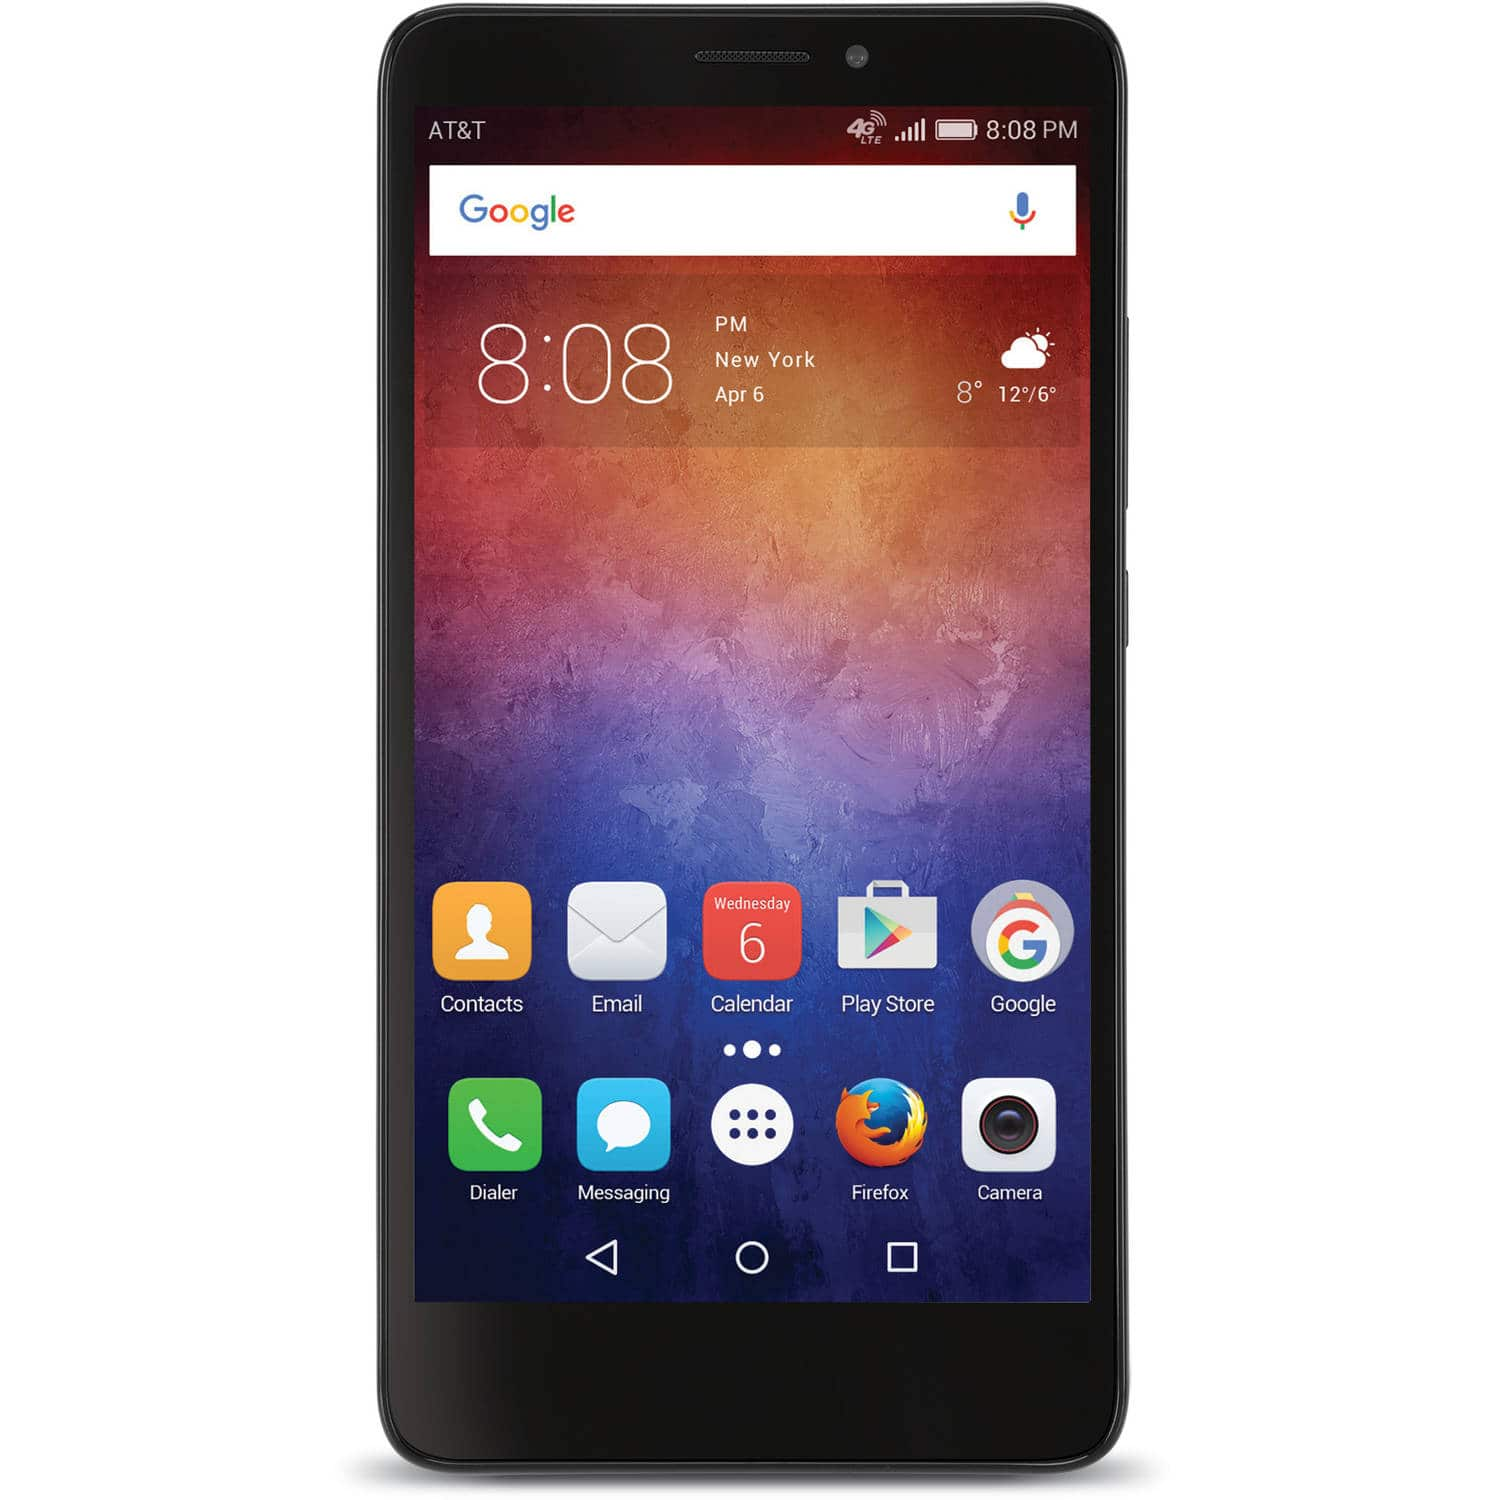 [Walmart] AT&T Huawei Ascend XT GoPhone Prepaid Smartphone $49.00 Free in-store pick up.